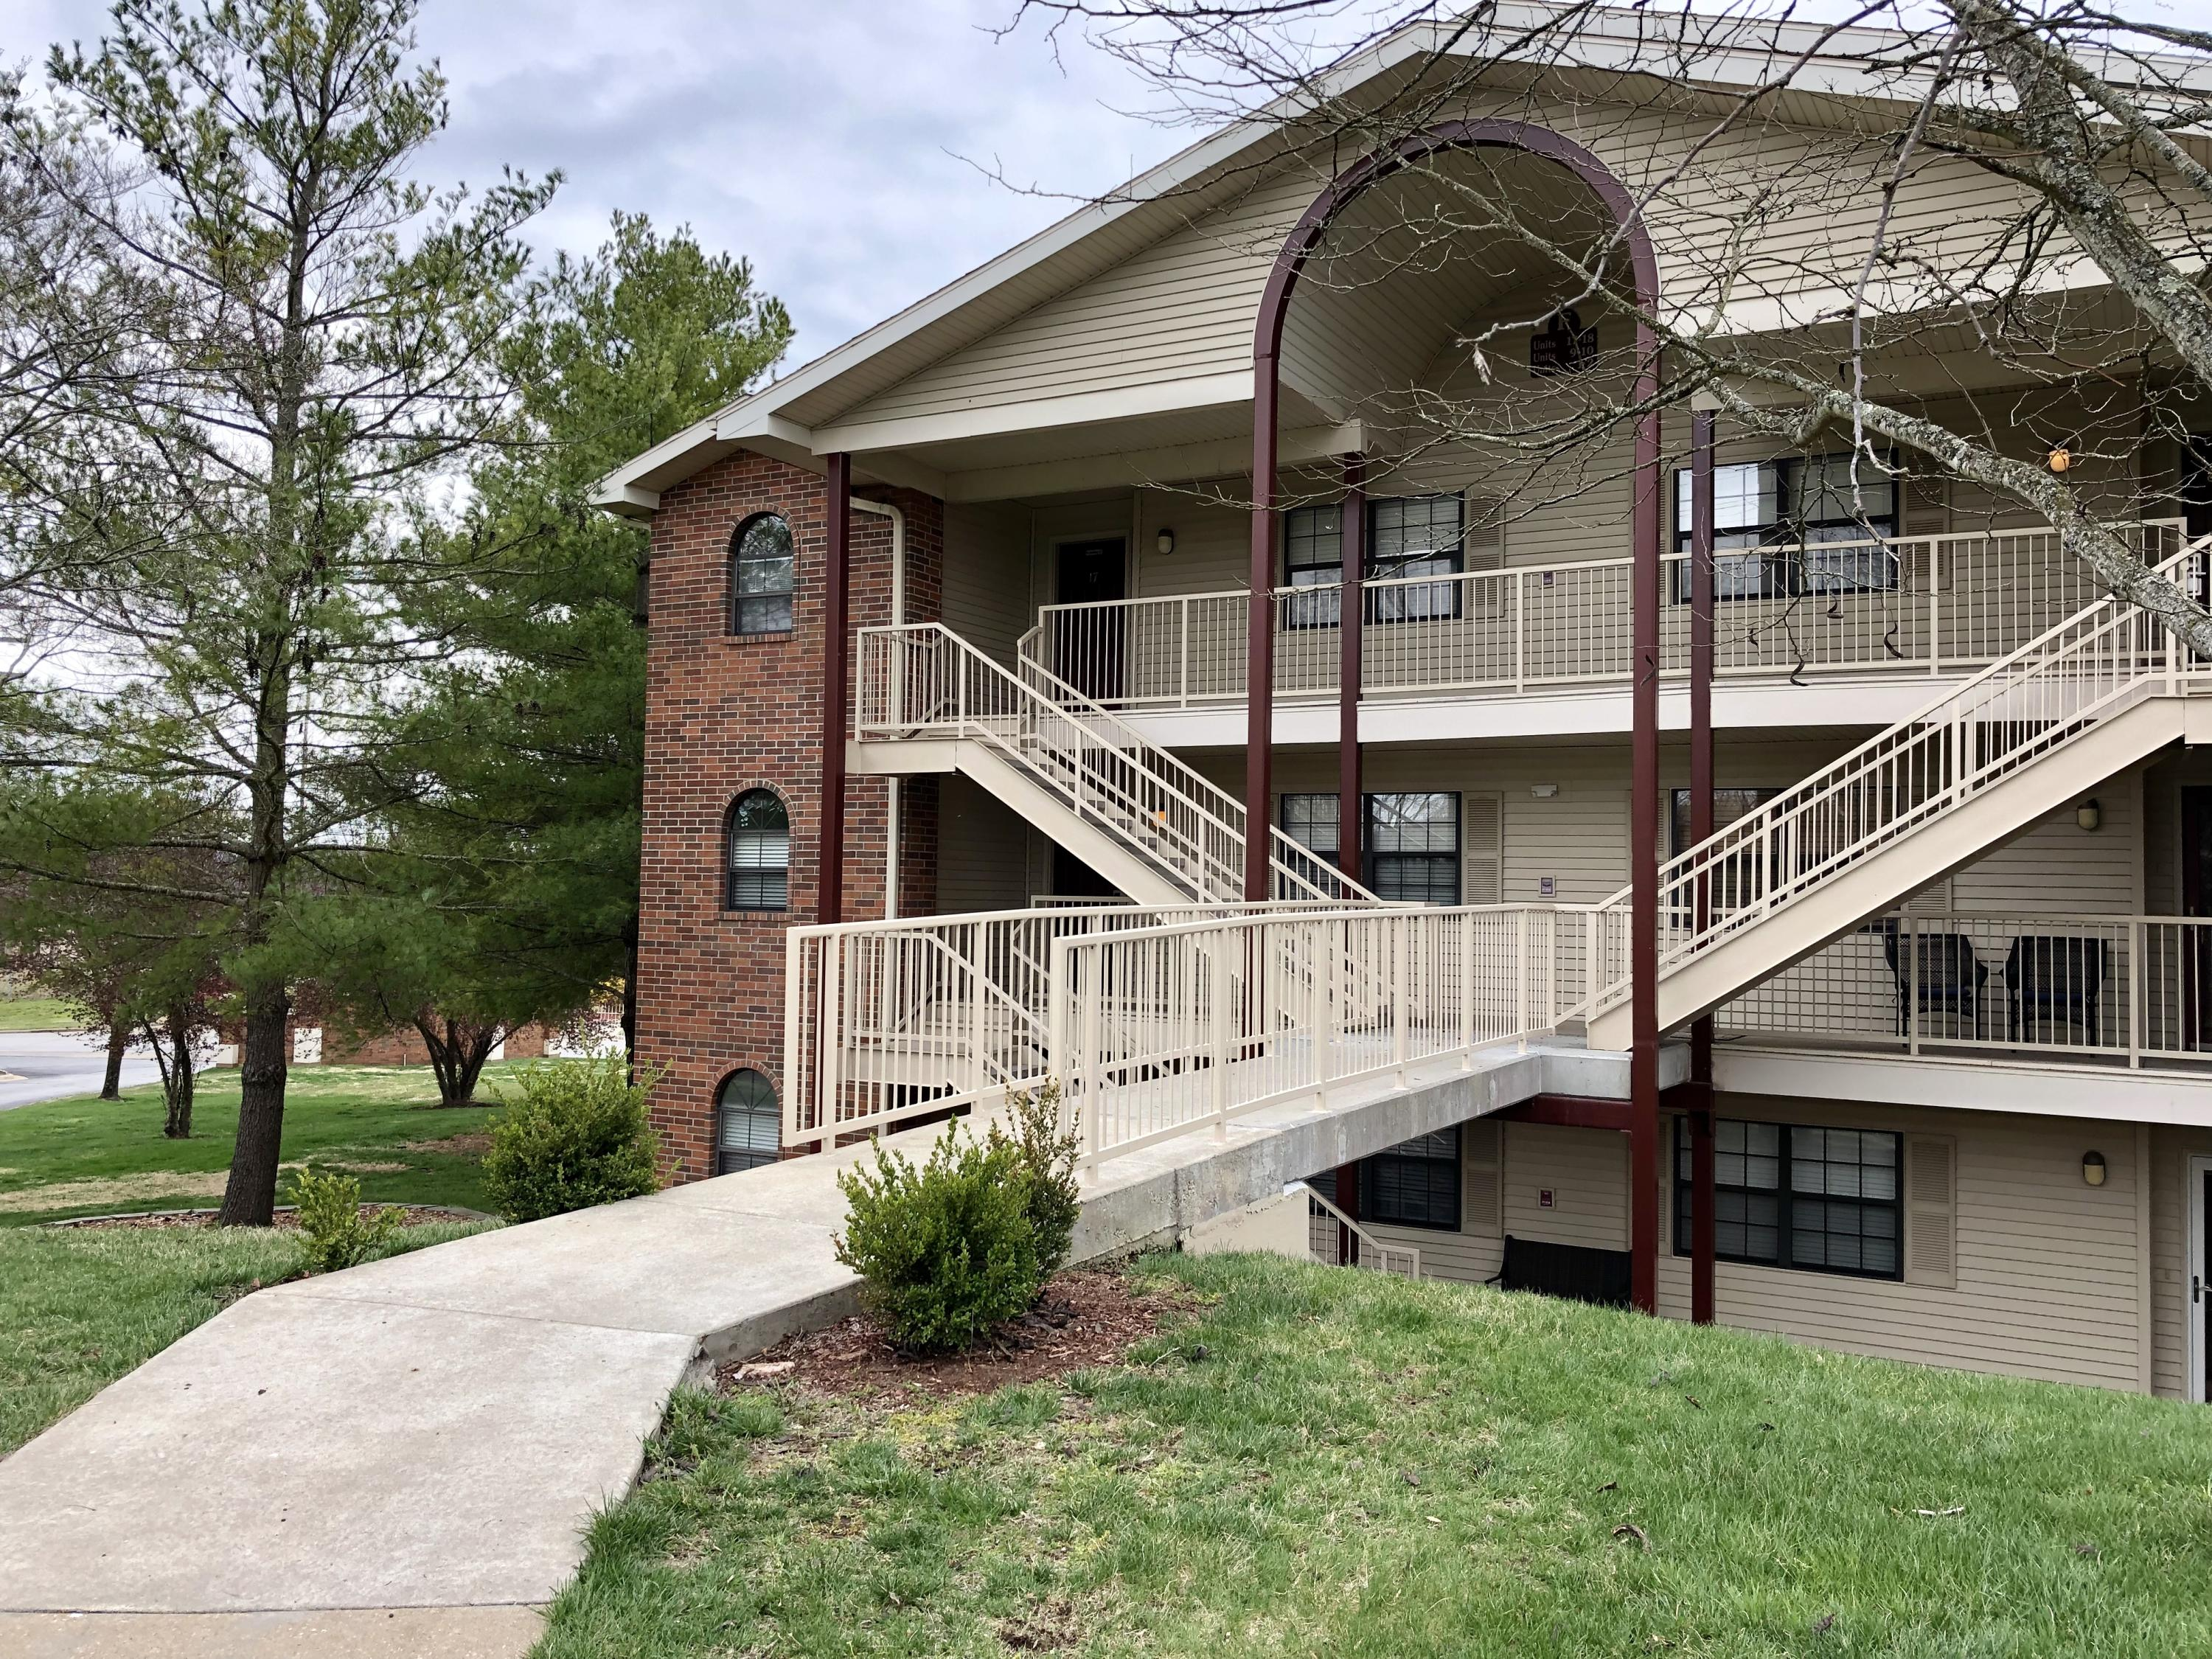 350 South Wildwood Drive #9 Branson, MO 65616